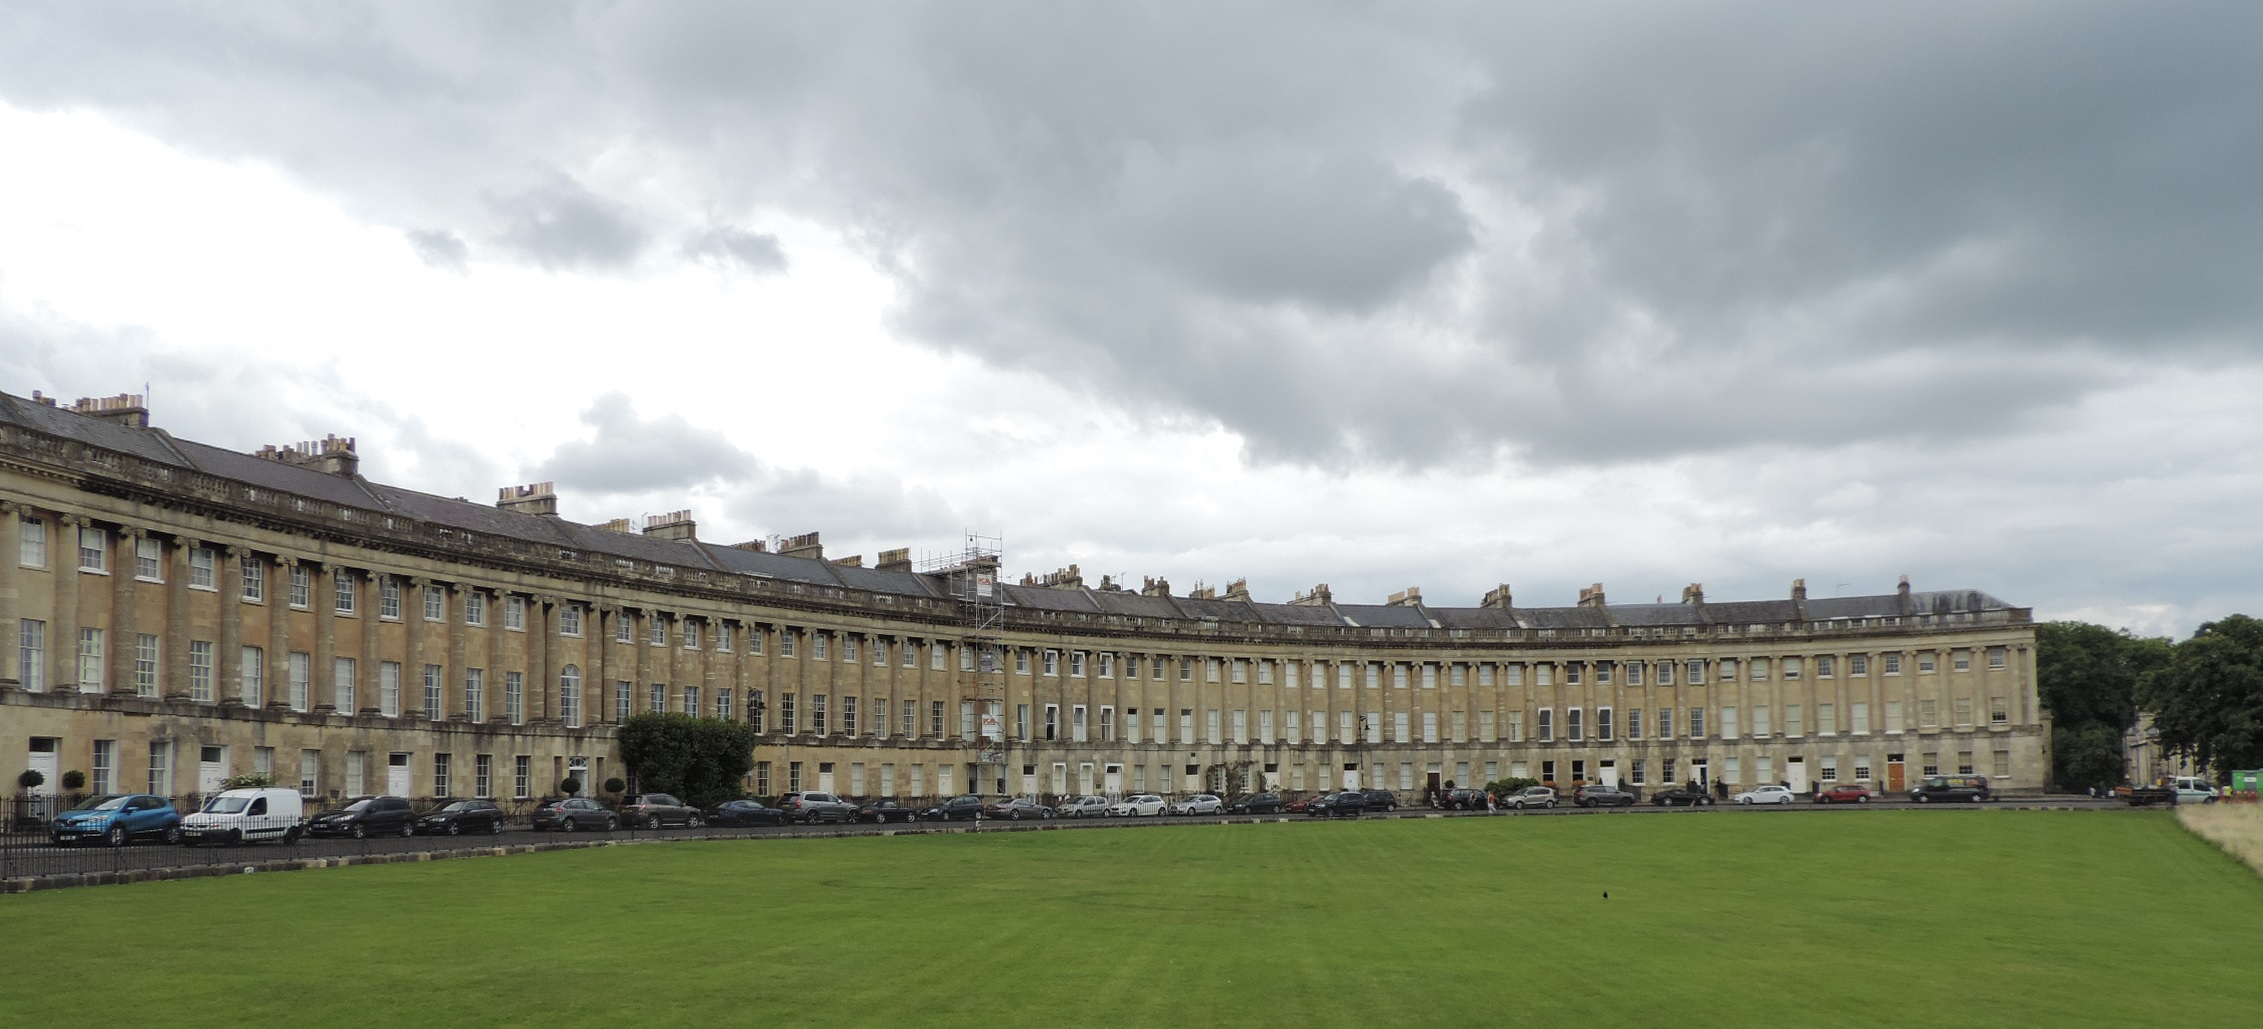 Bath-general-ciudad